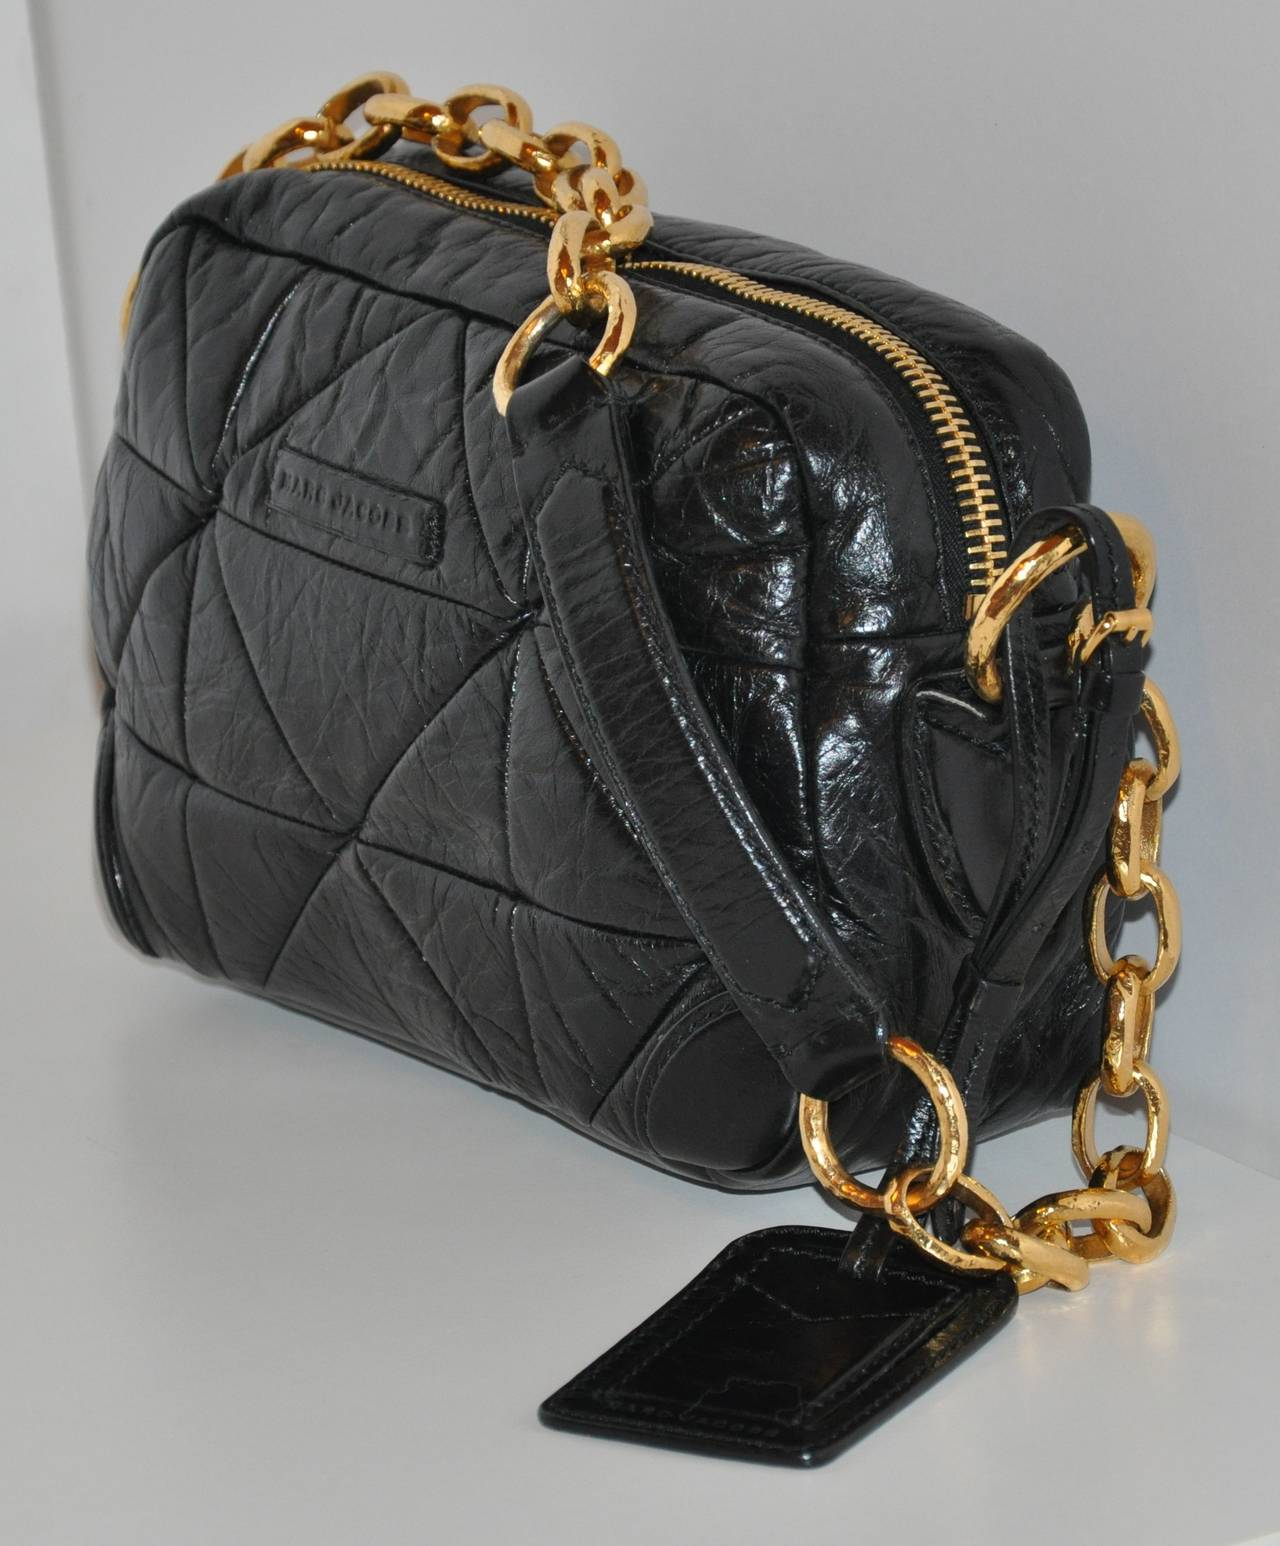 Marc Jacobs Black Calfskin Quilted With Gold Hardware Shoulder Bag In Excellent Condition For